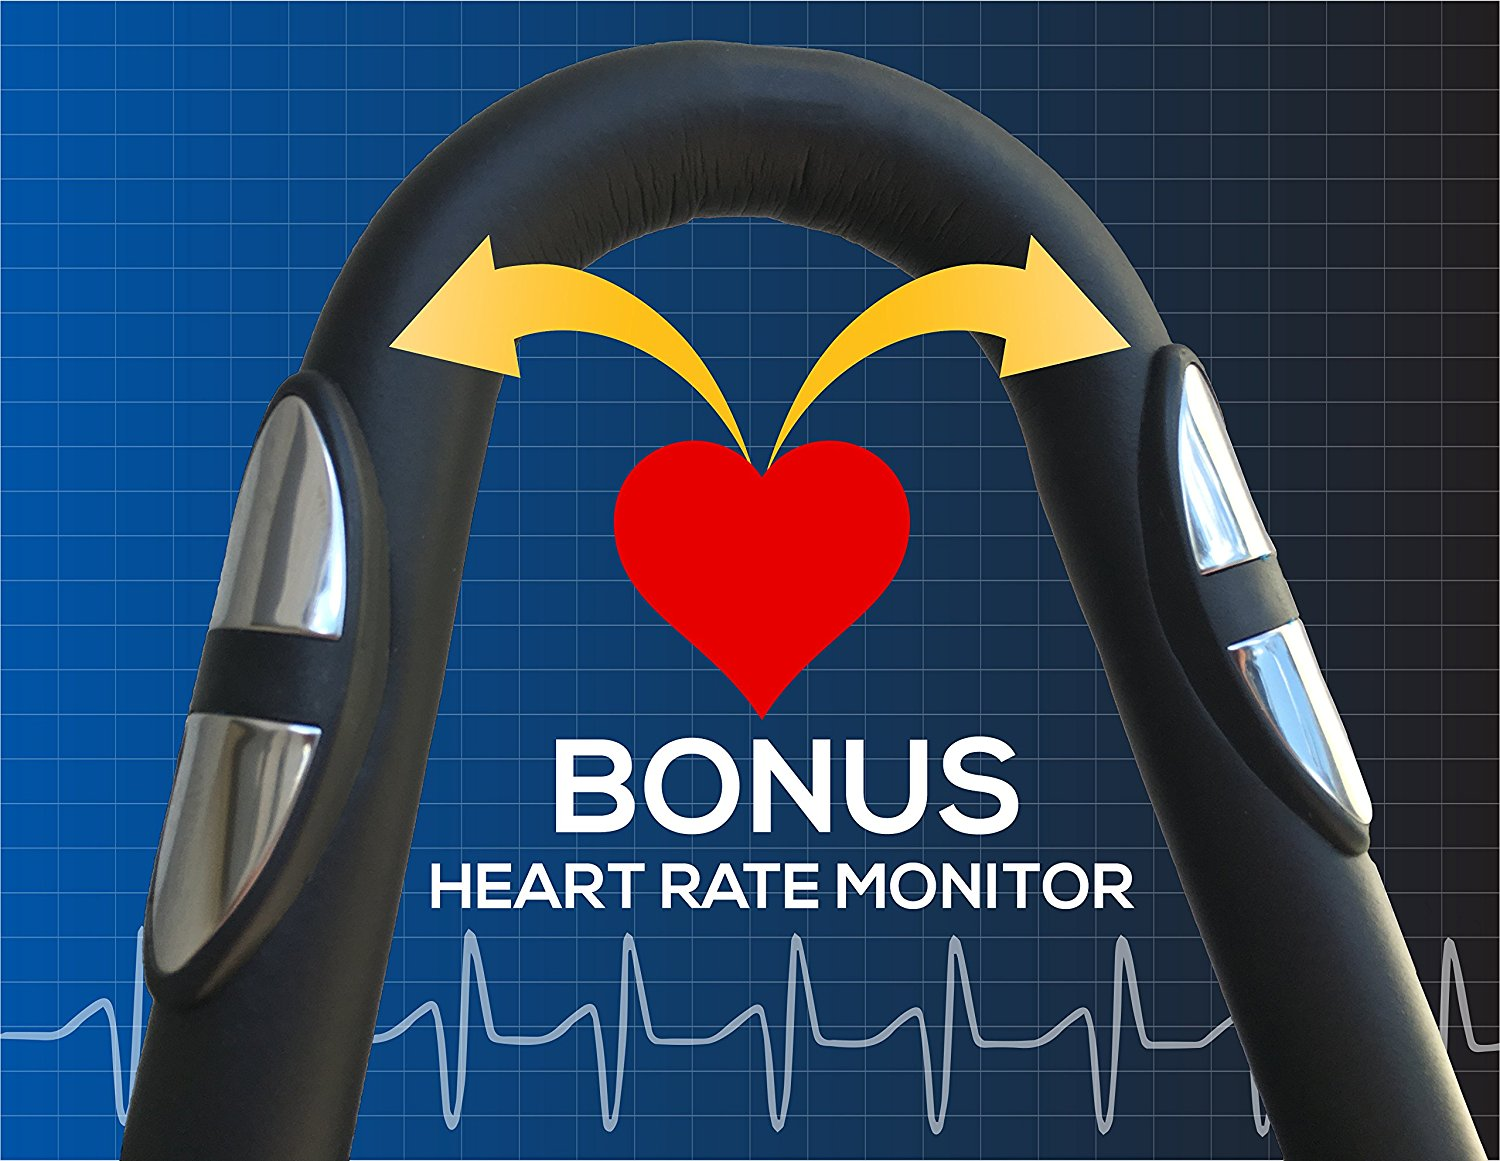 Bonus Heart Rate Monitor